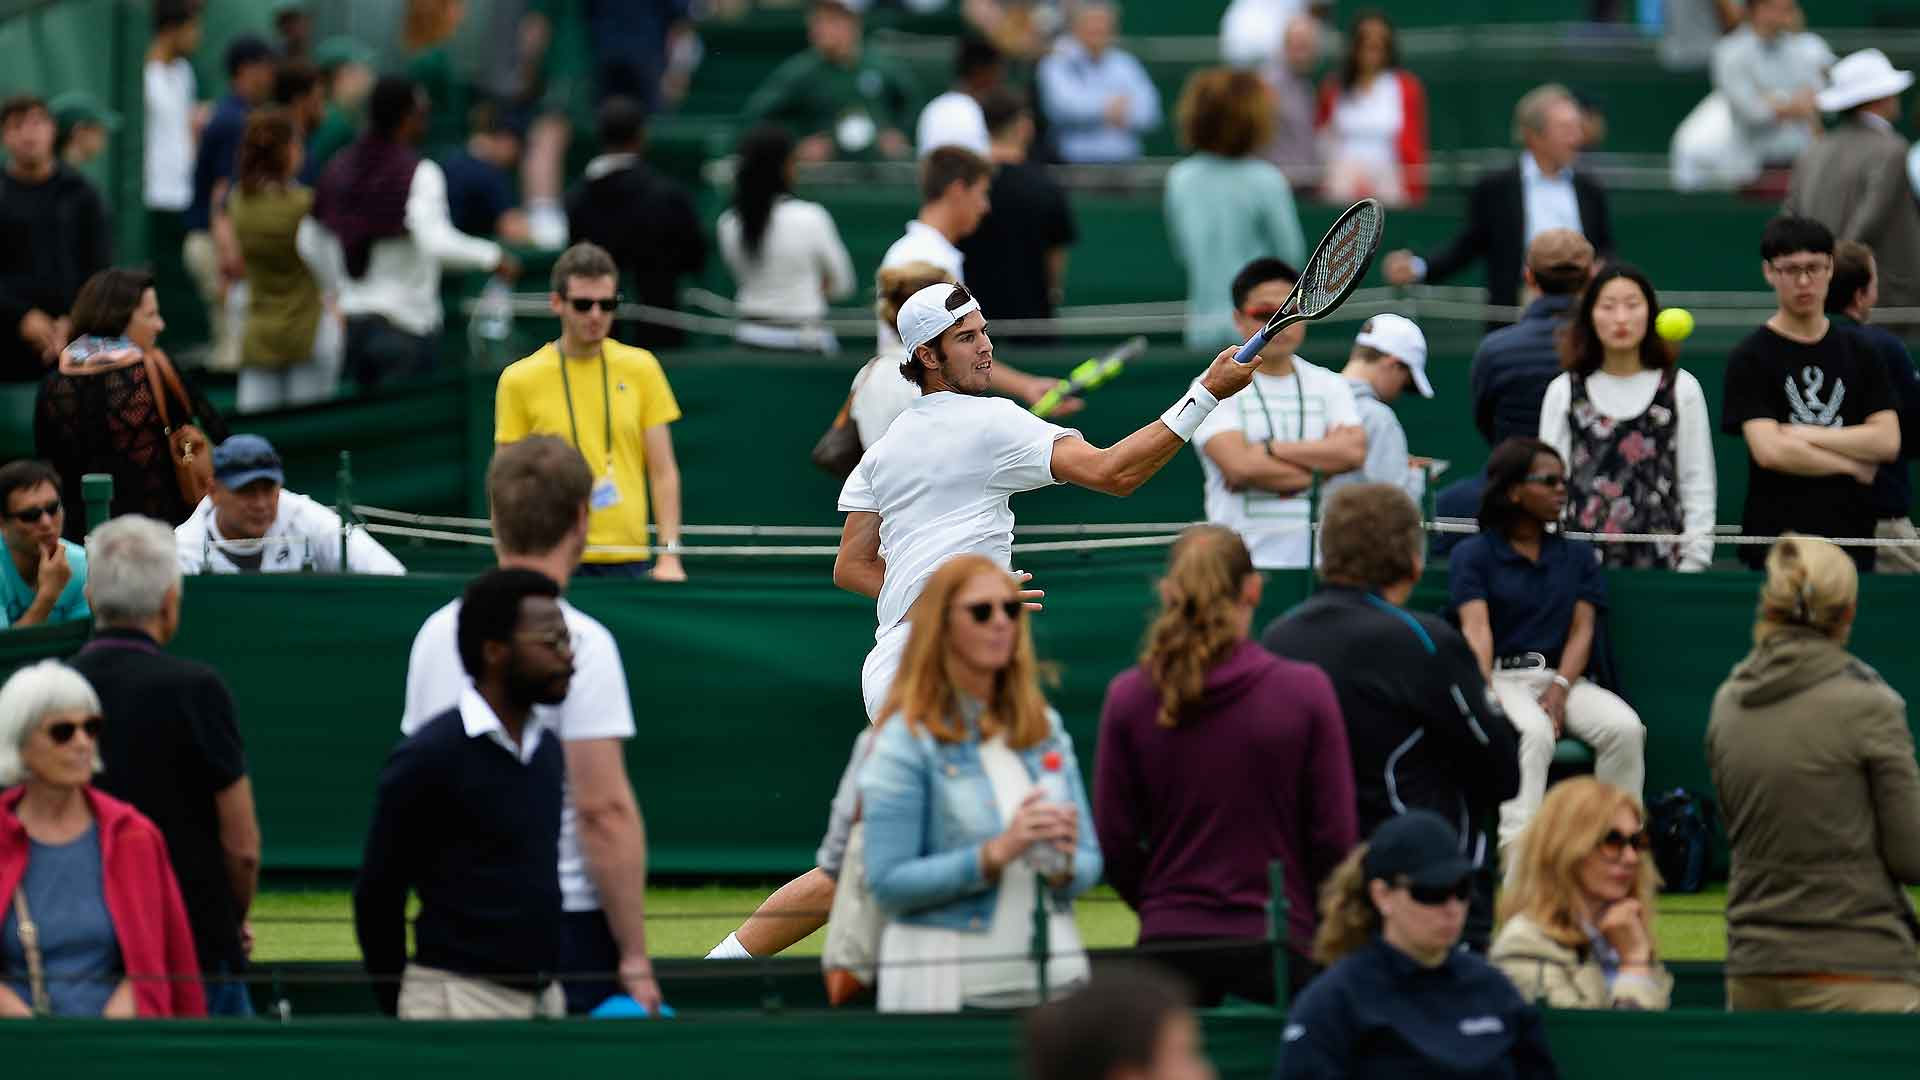 Watch Day 1 of @Wimbledon Qualifying now: https://t.co/WyBTDsGj18 (global excl. US, Spain, Italy) #atp #tennis https://t.co/bA2Q3xL0HA